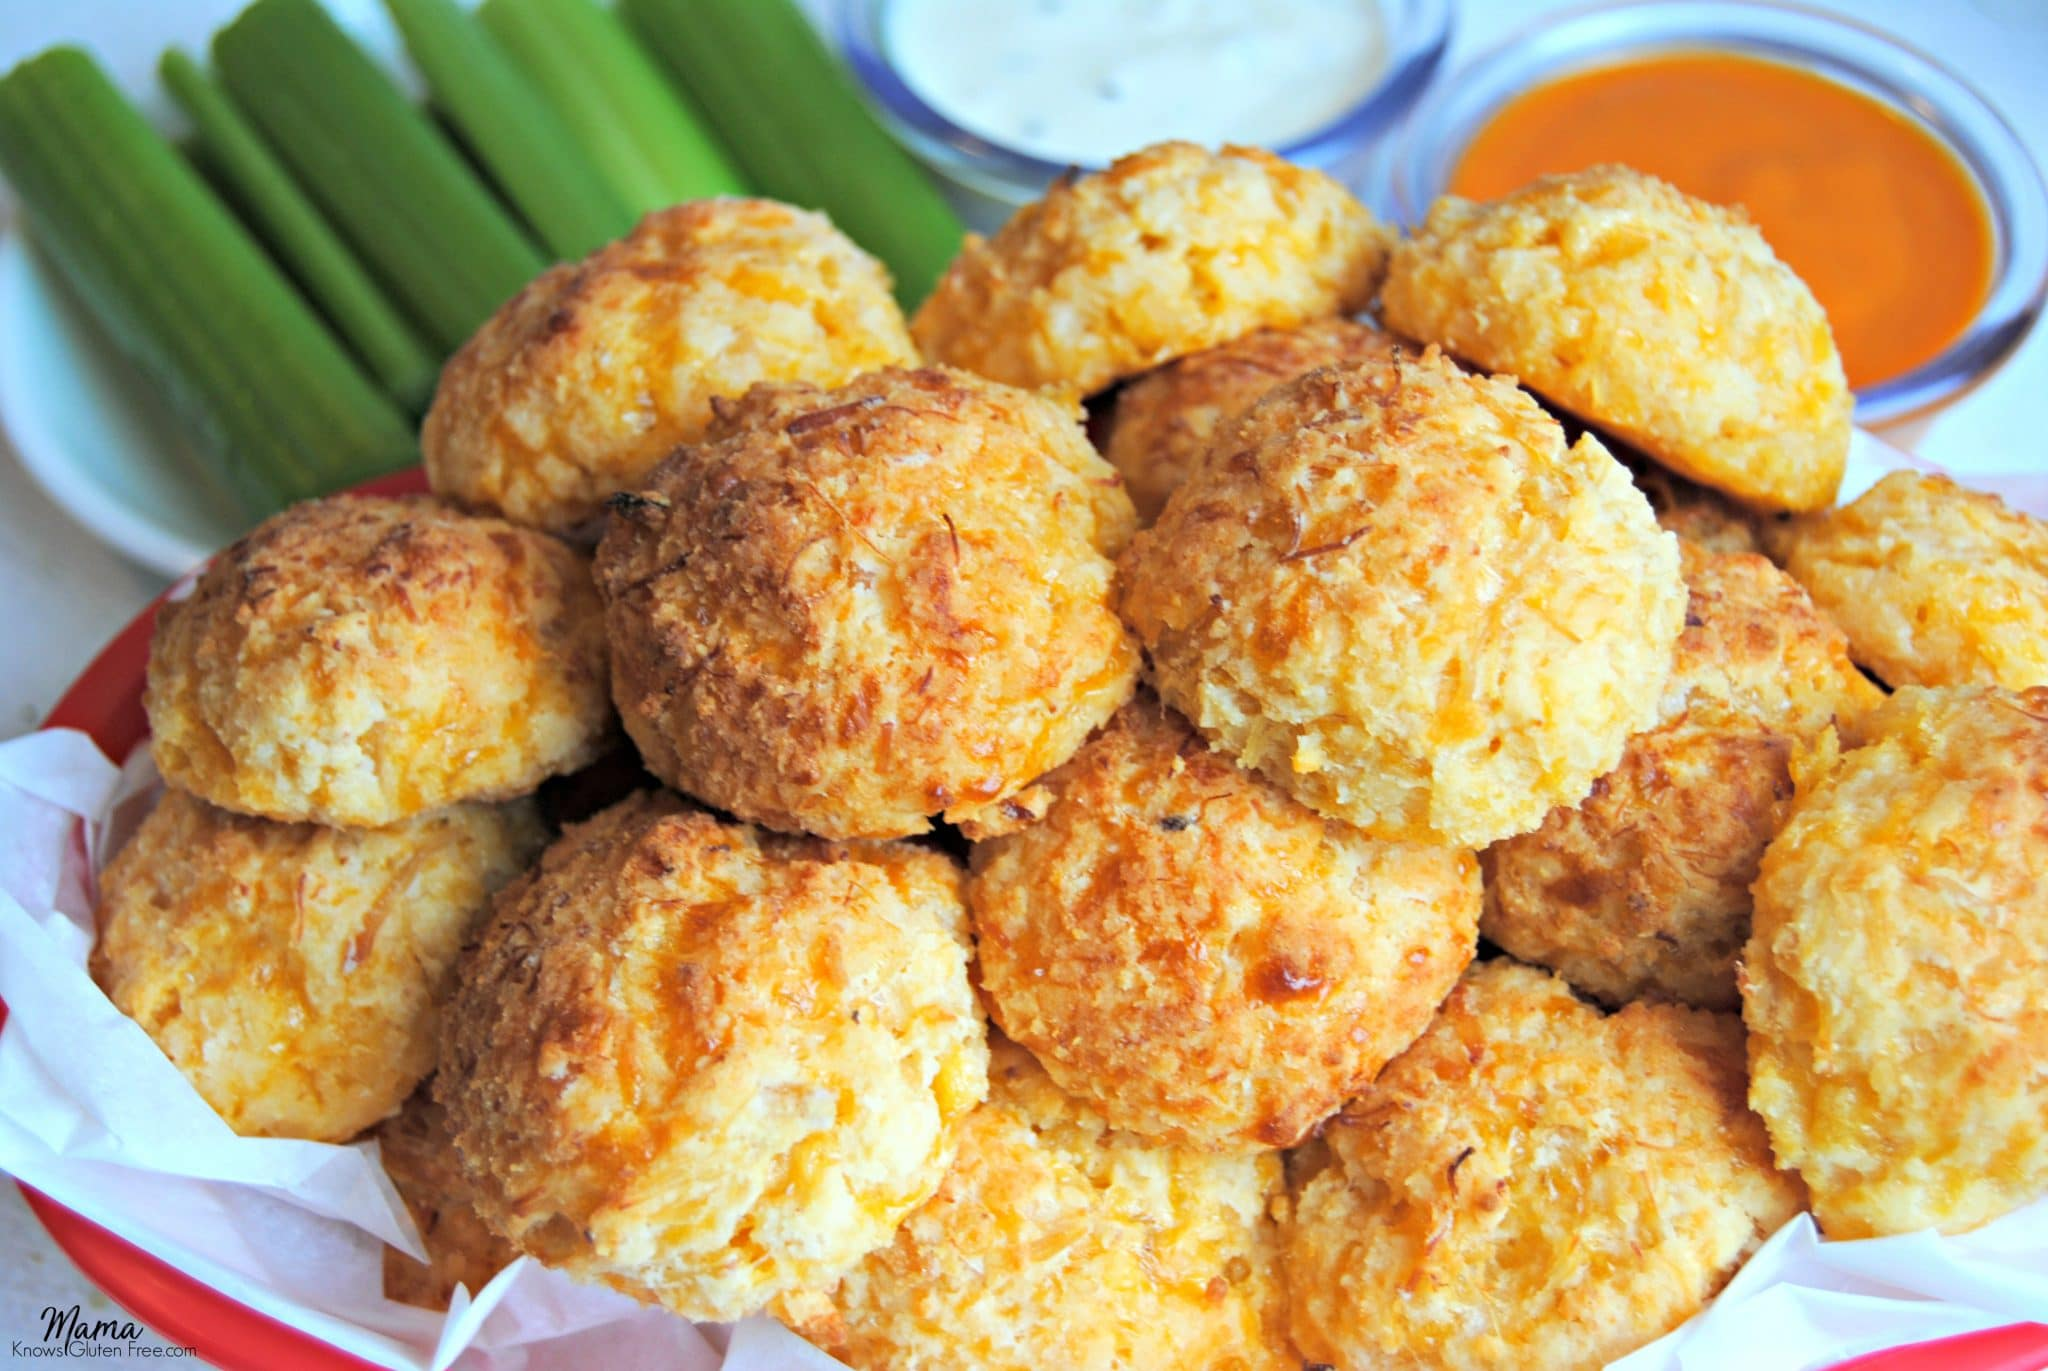 gluten-free buffalo chicken bites in a basket with celery and sauce